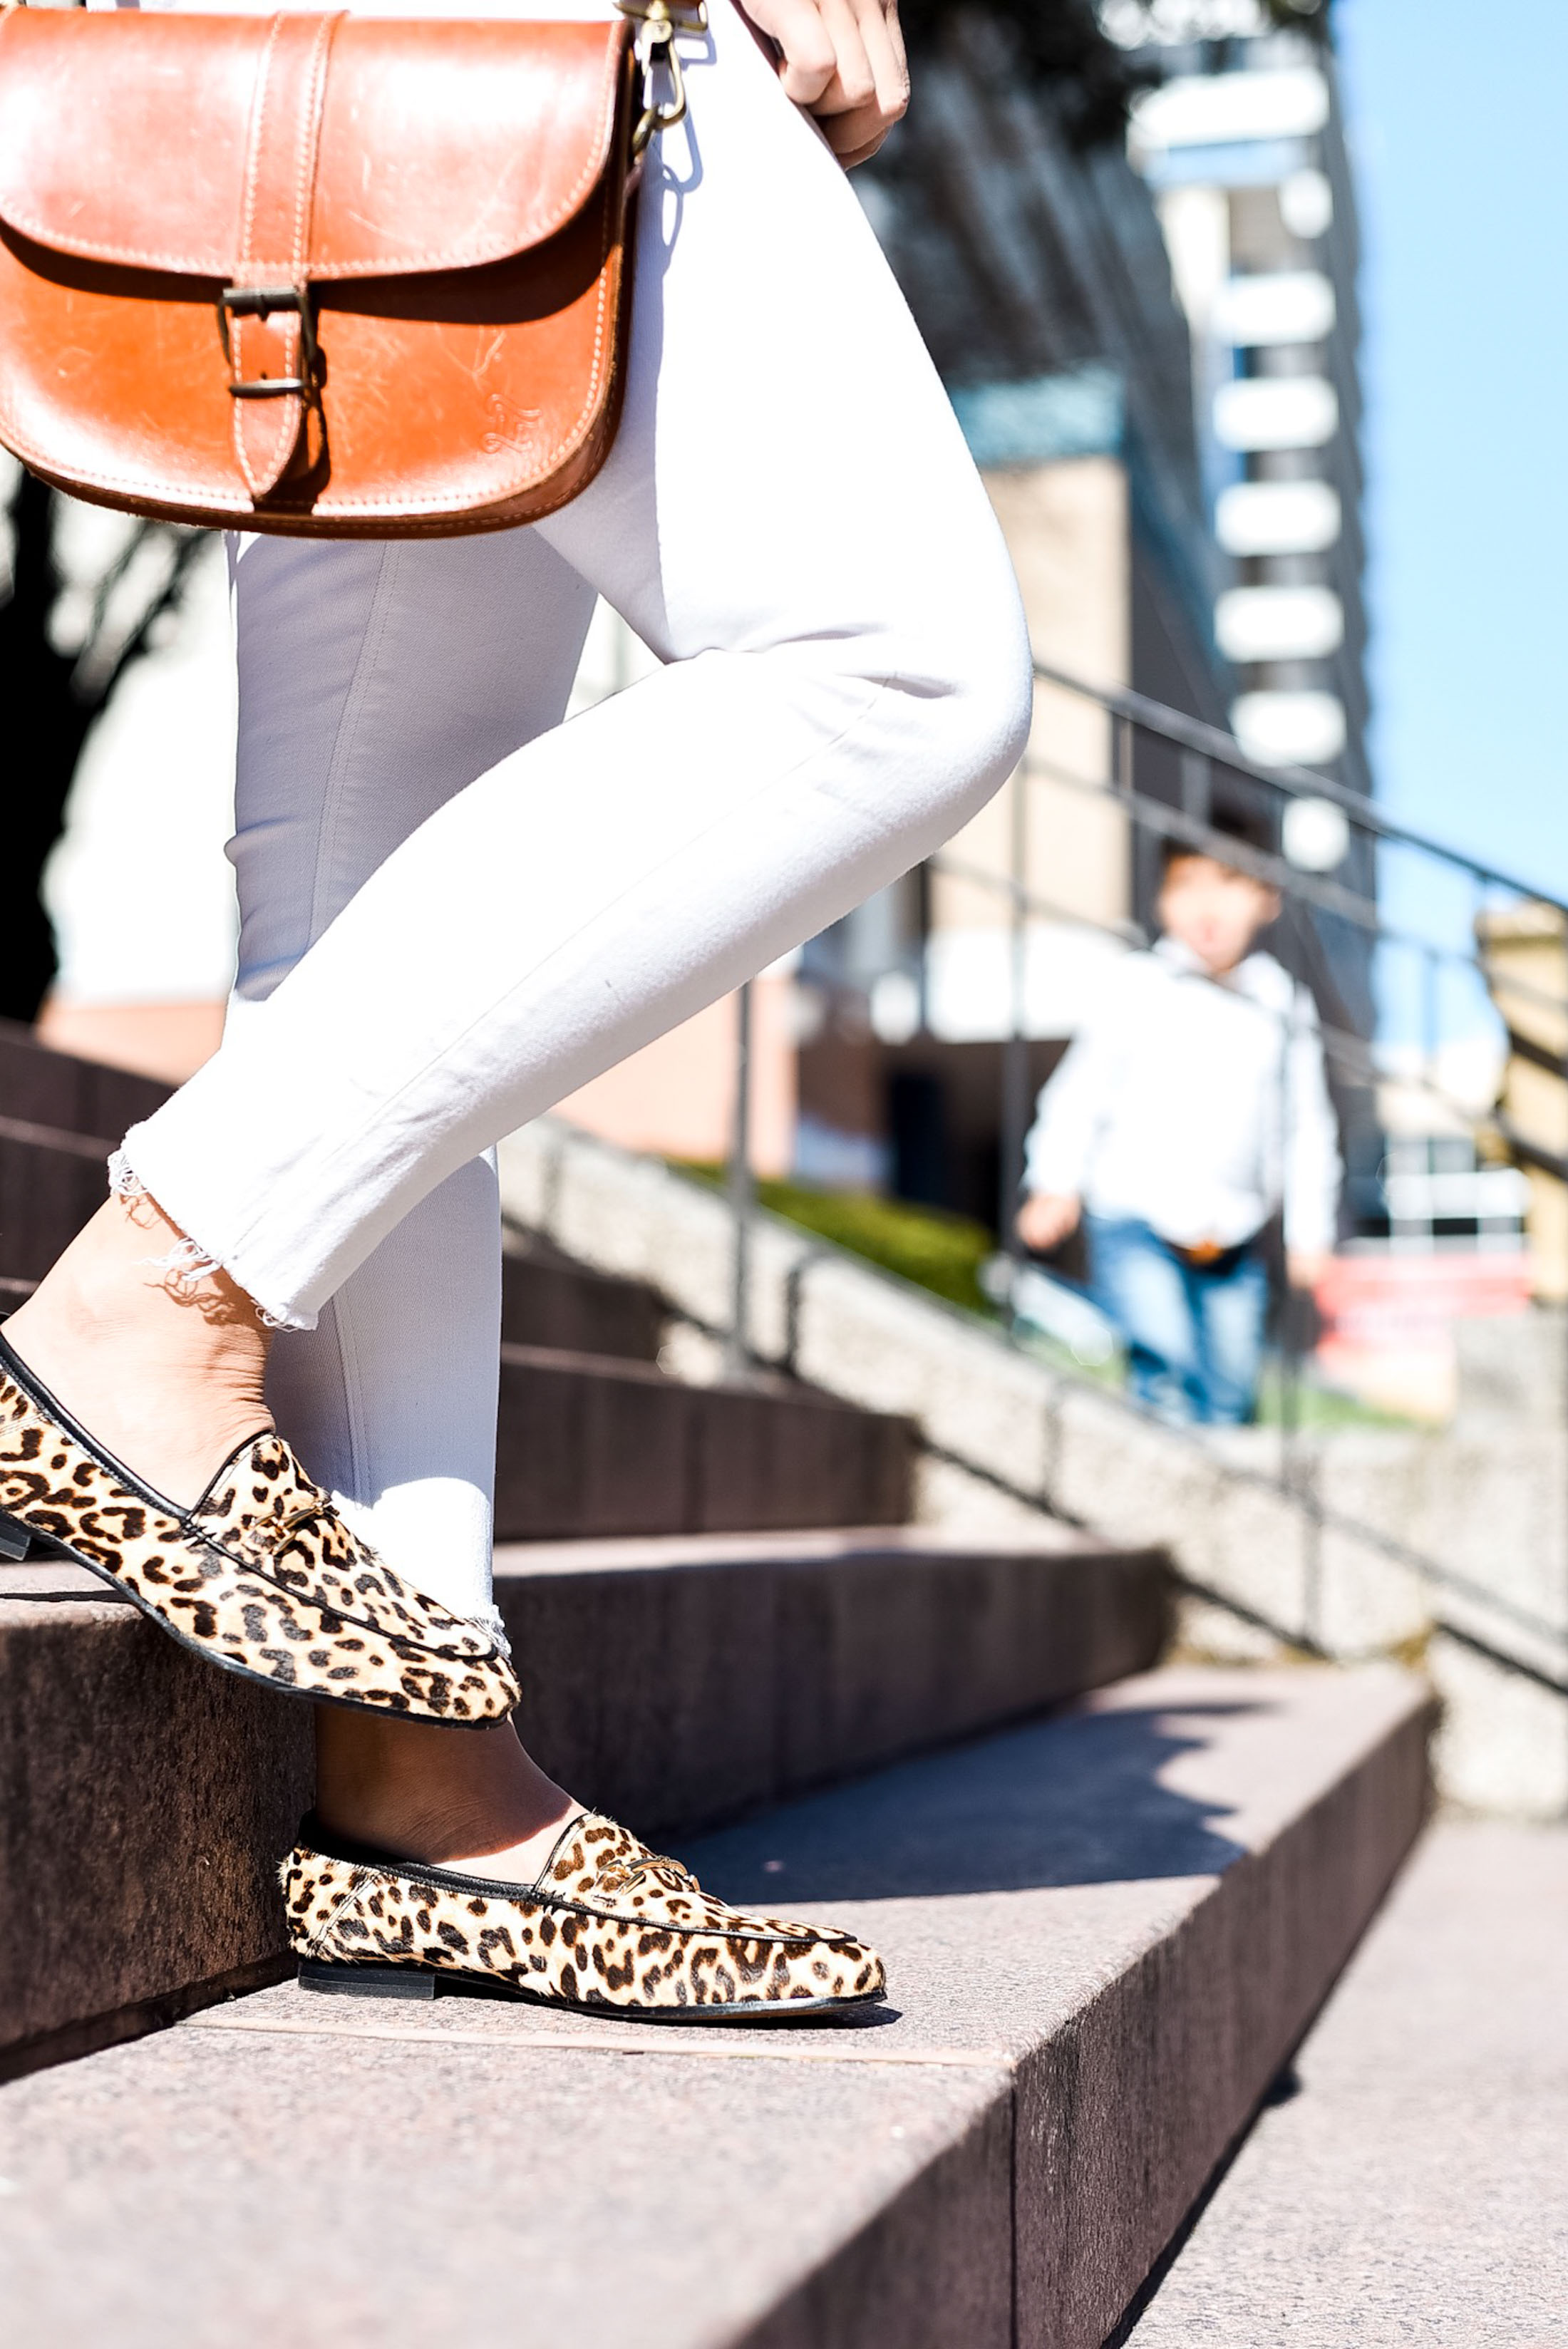 Cool, spring weather calls for a mix of chic favs —seasonless cashmere, high-rise jeans, a hair scarf & leopard shoes — for an easy outfit formula. YES.